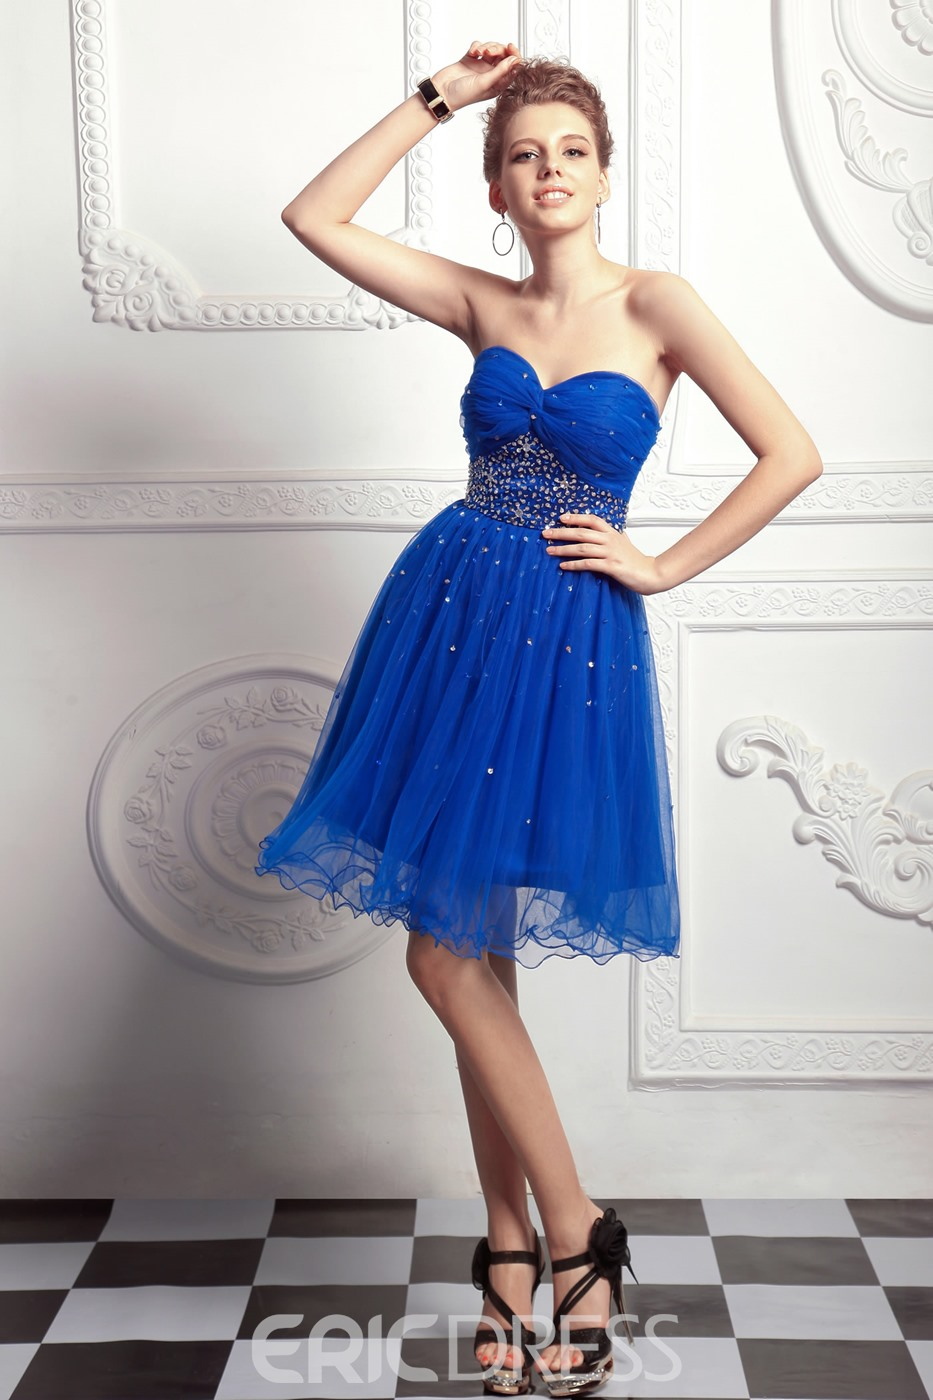 A-Line Knee-Length Sweetheart Sequins Anita's Prom Homecoming Dress